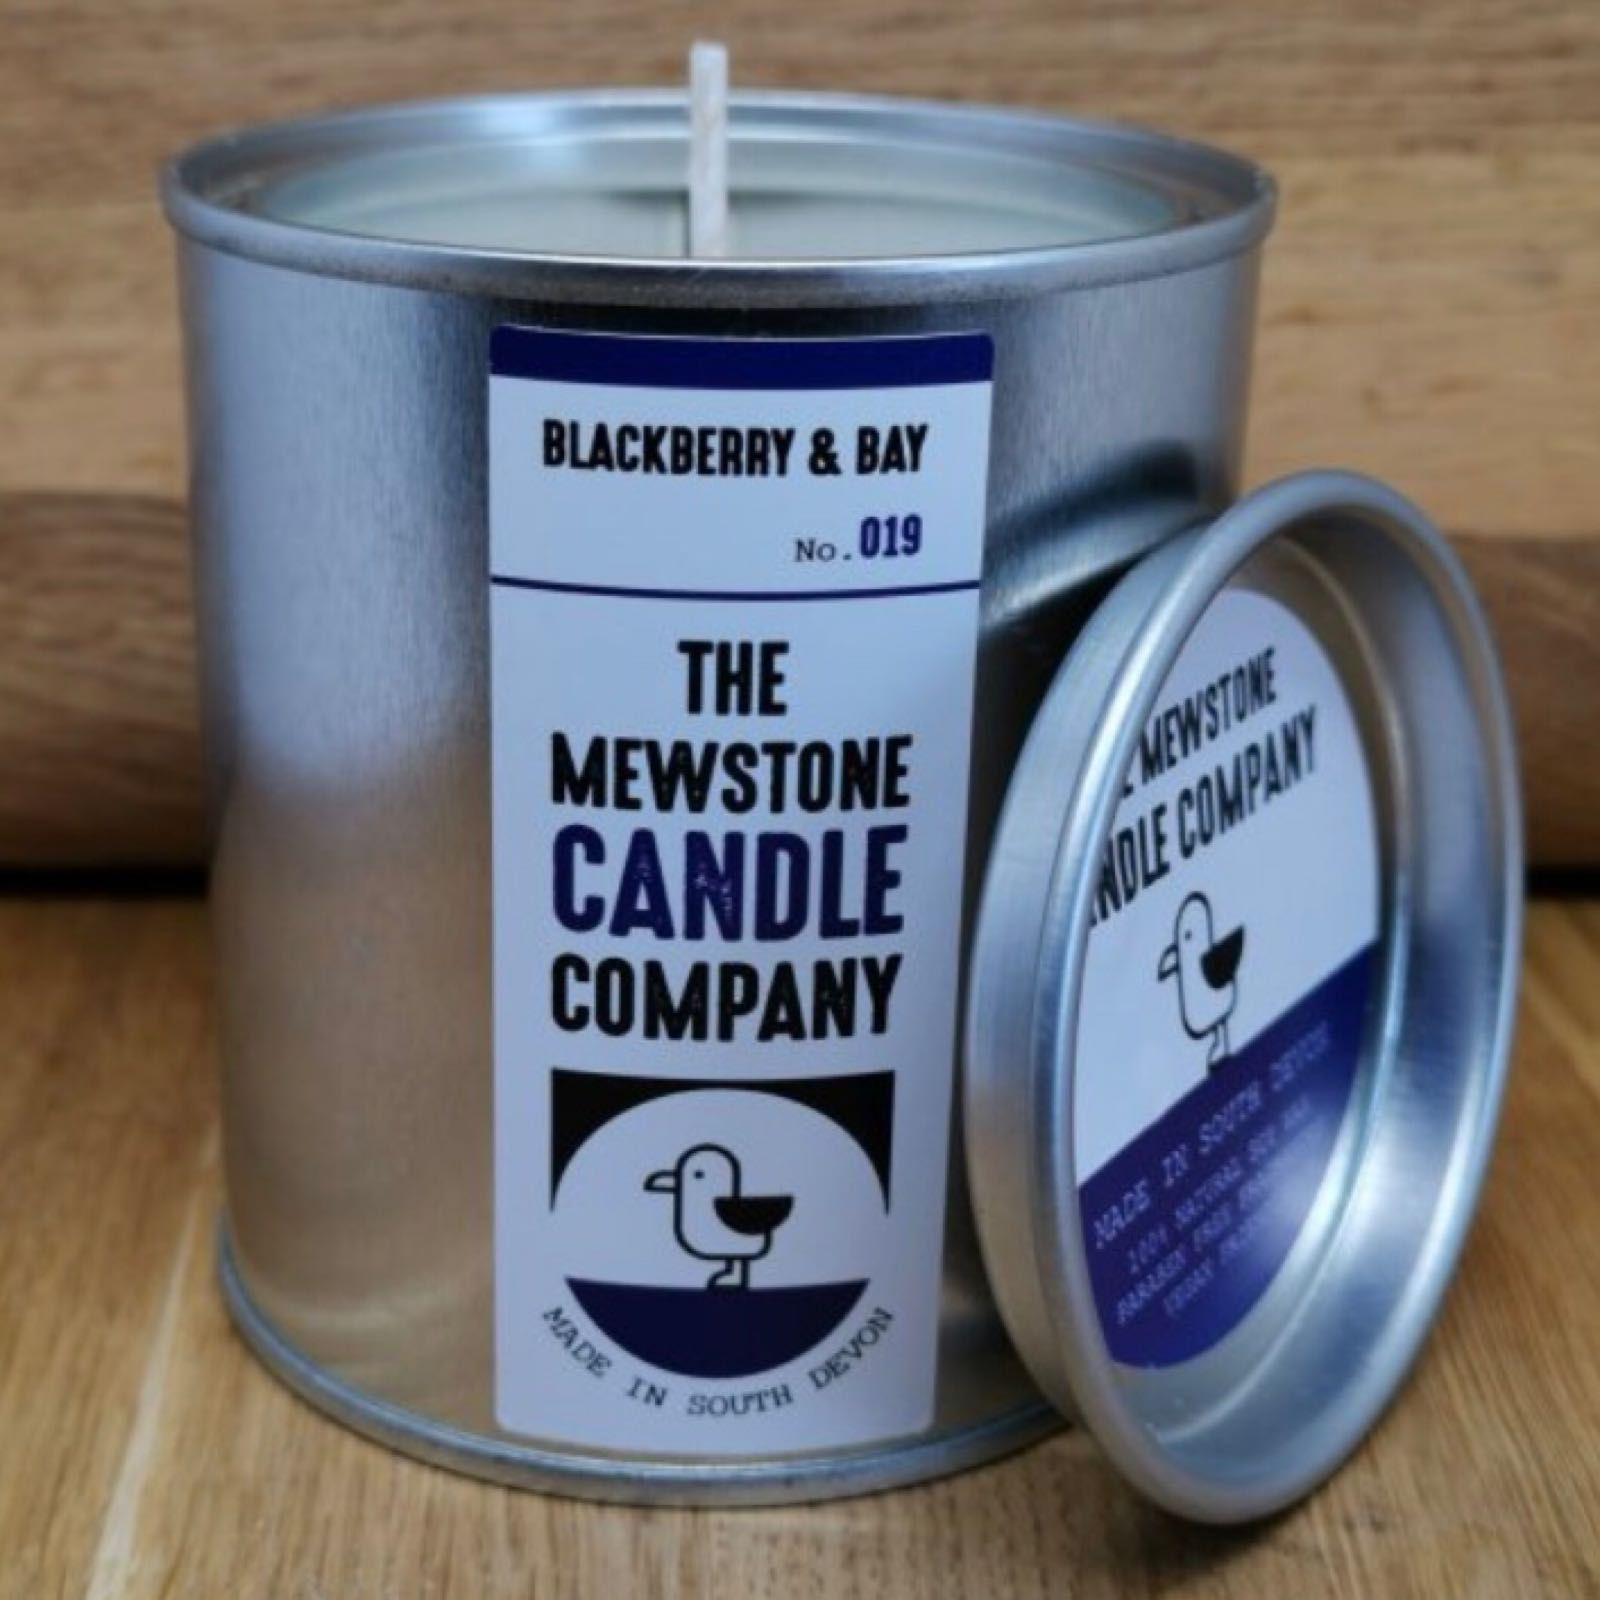 'Blackberry & Bay' Paint Tin Candle